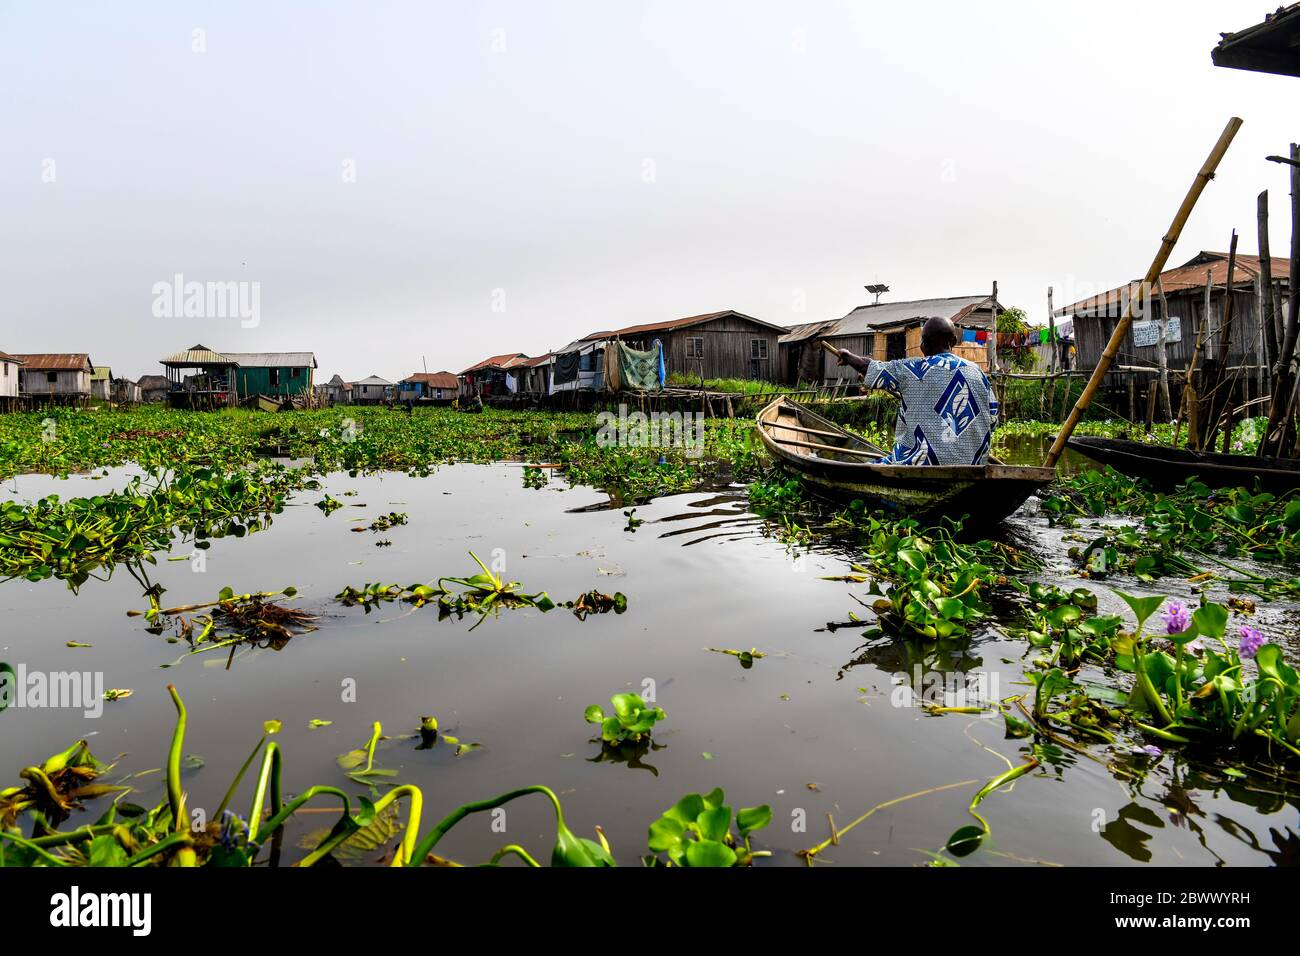 Africa, West Africa, Benin, Lake Nokoue, Ganvié. Pirogues in the water streets of the lakeside town of Ganvié. Stock Photo